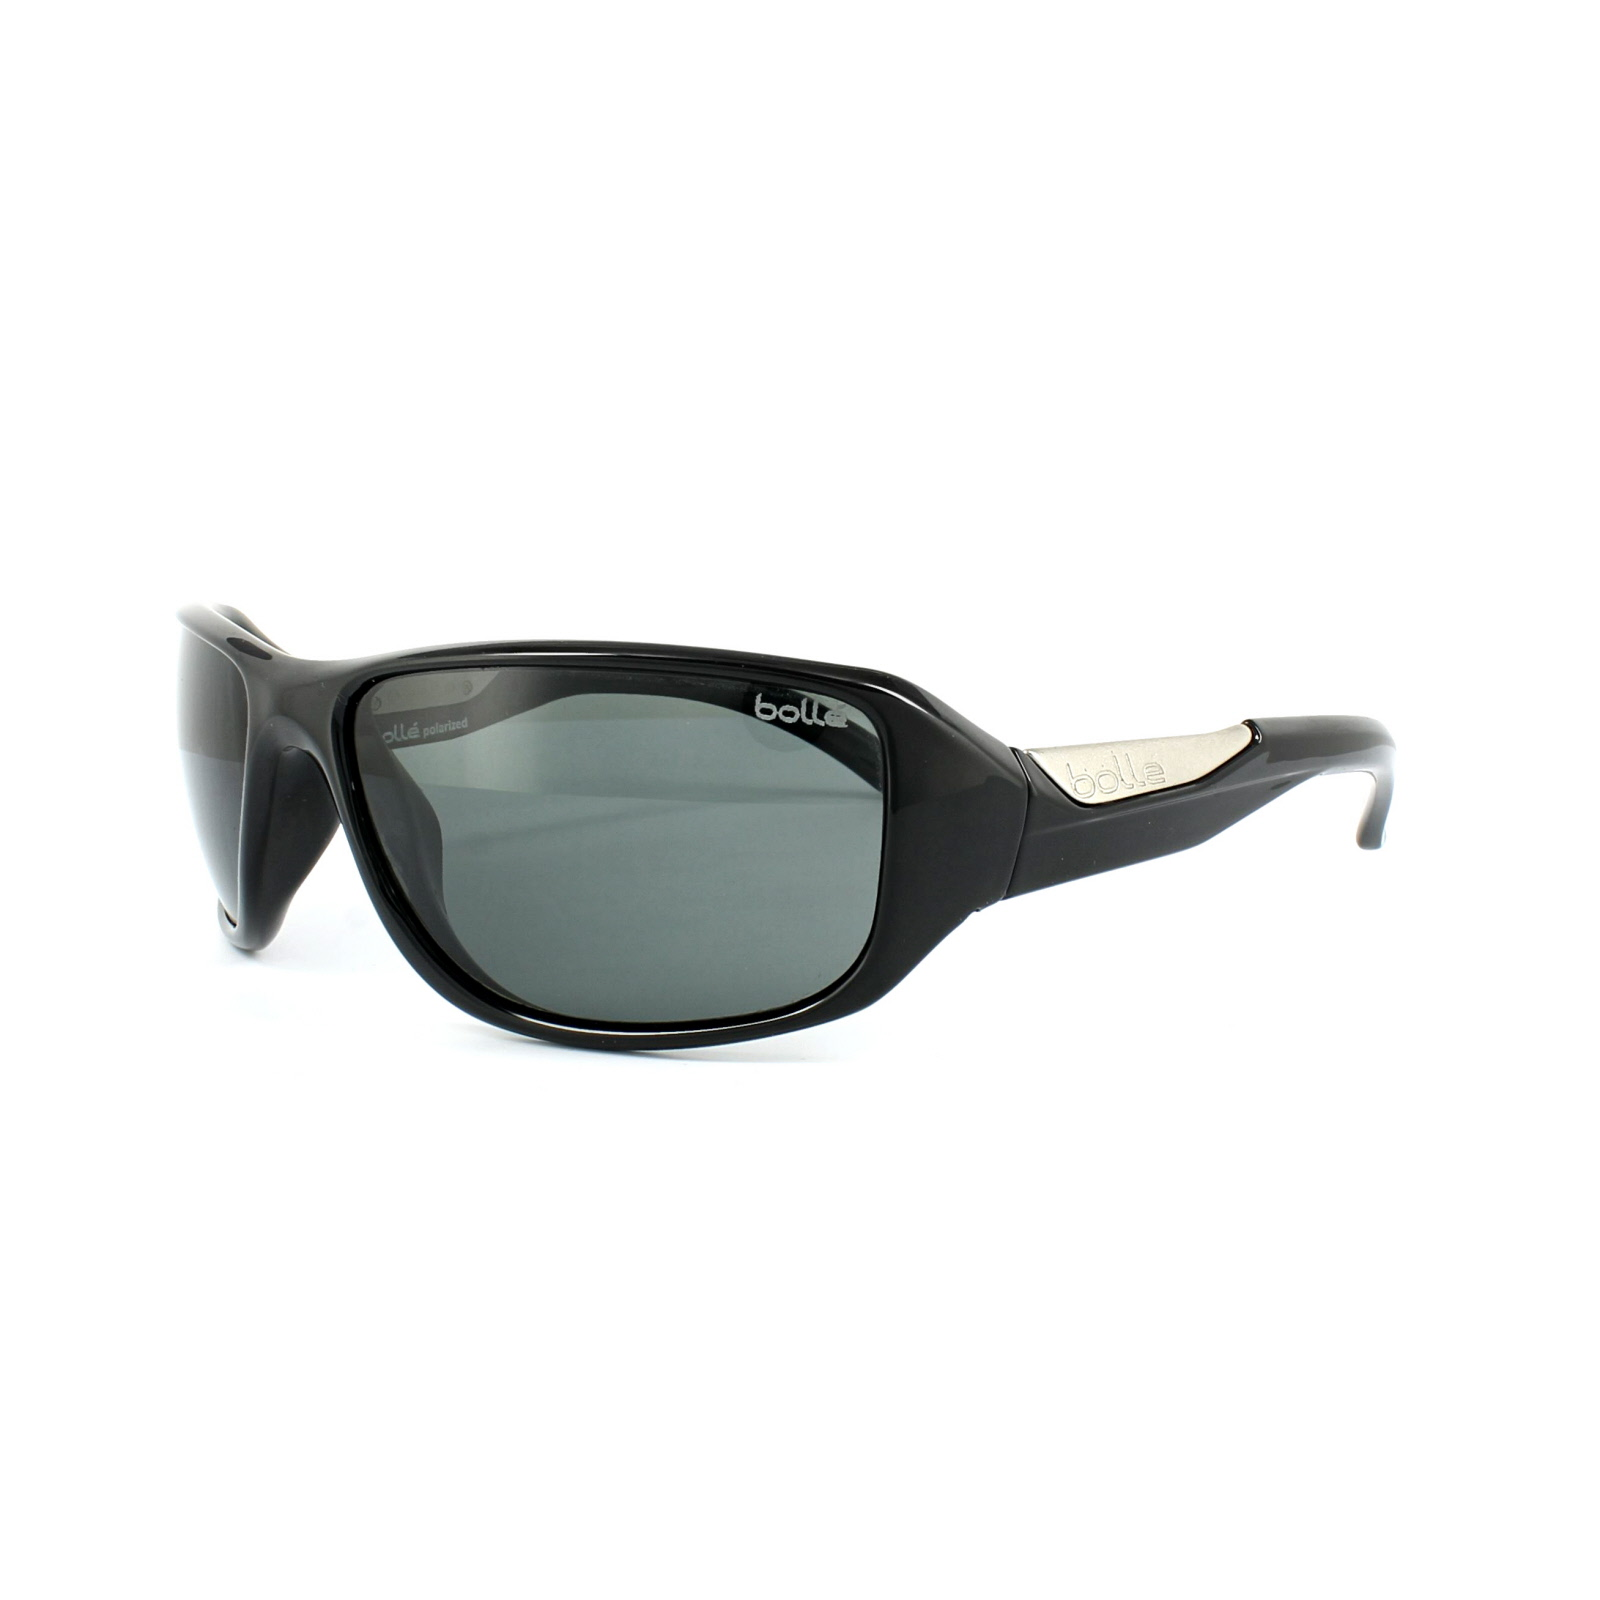 963f116f43c Sentinel Bolle Sunglasses Smart 11642 Shiny Black TNS Grey Polarized